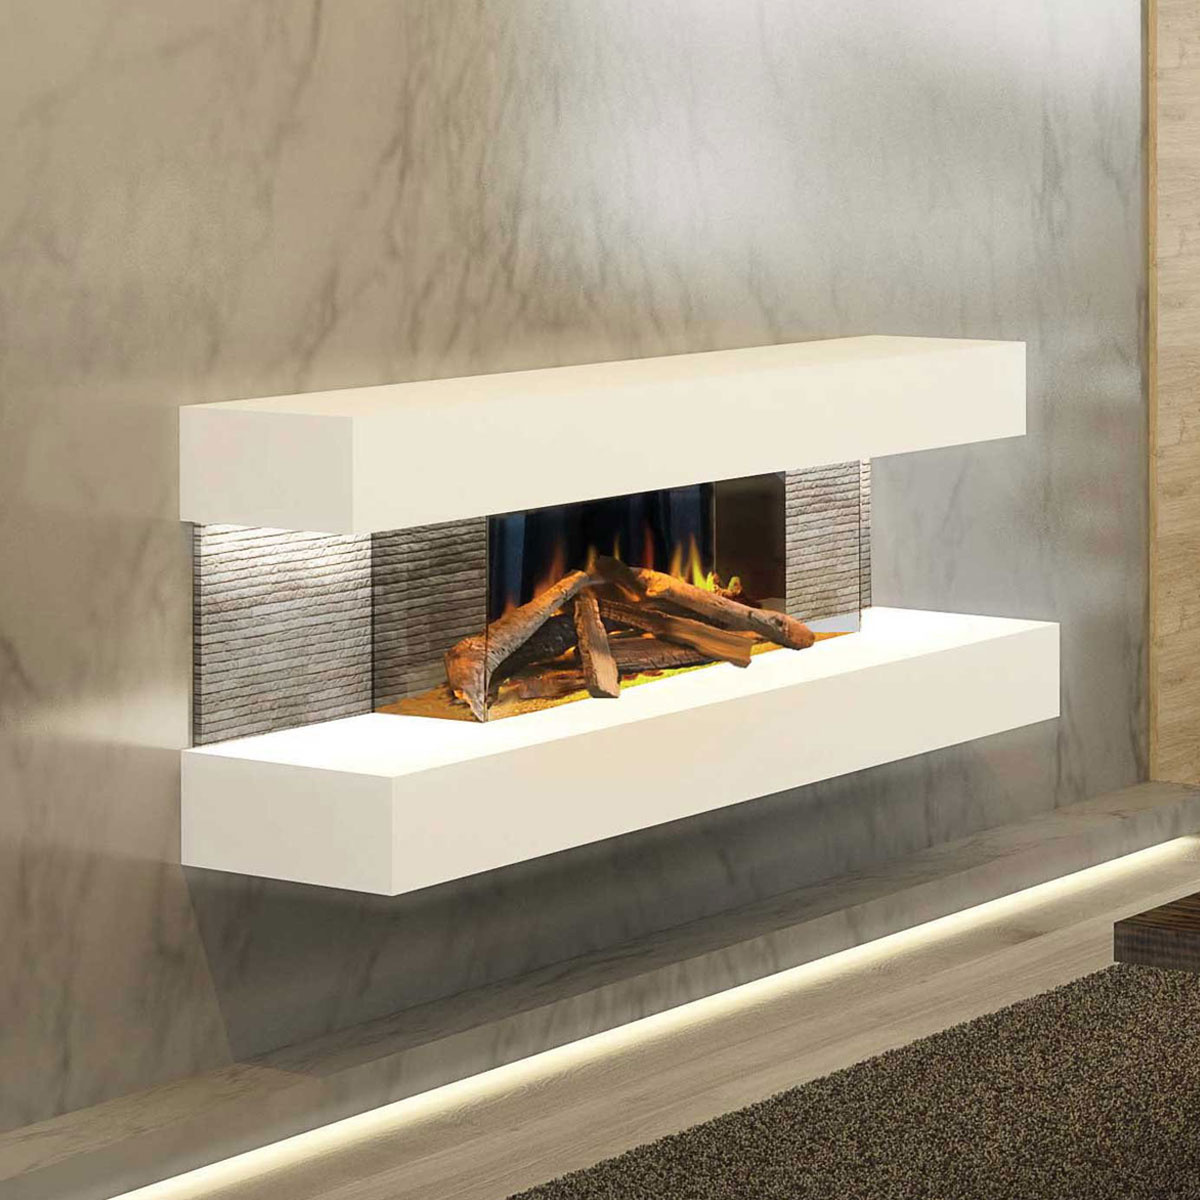 Evonic Fires Compton 2 Wall Hanging Electric Fire Suite